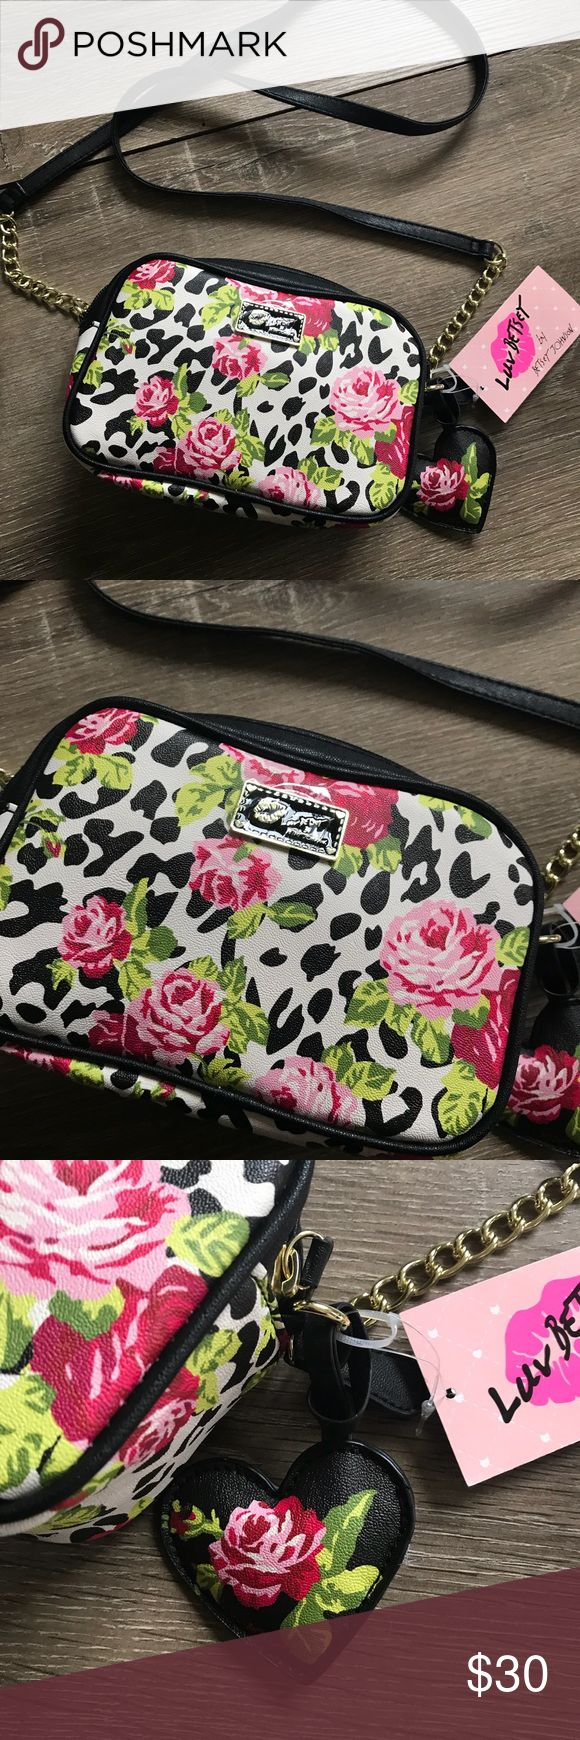 """Betsey Johnson • rose crossbody Betsey Johnson rose patterned crossbody on an animal print (leopard cheetah) background. Two zip compartments make for lots of storage. Removable heart decal.   Length7.5"""" Height 4.5"""" Depth 2.5"""" Shoulder drop 24"""" Betsey Johnson Bags Crossbody Bags"""